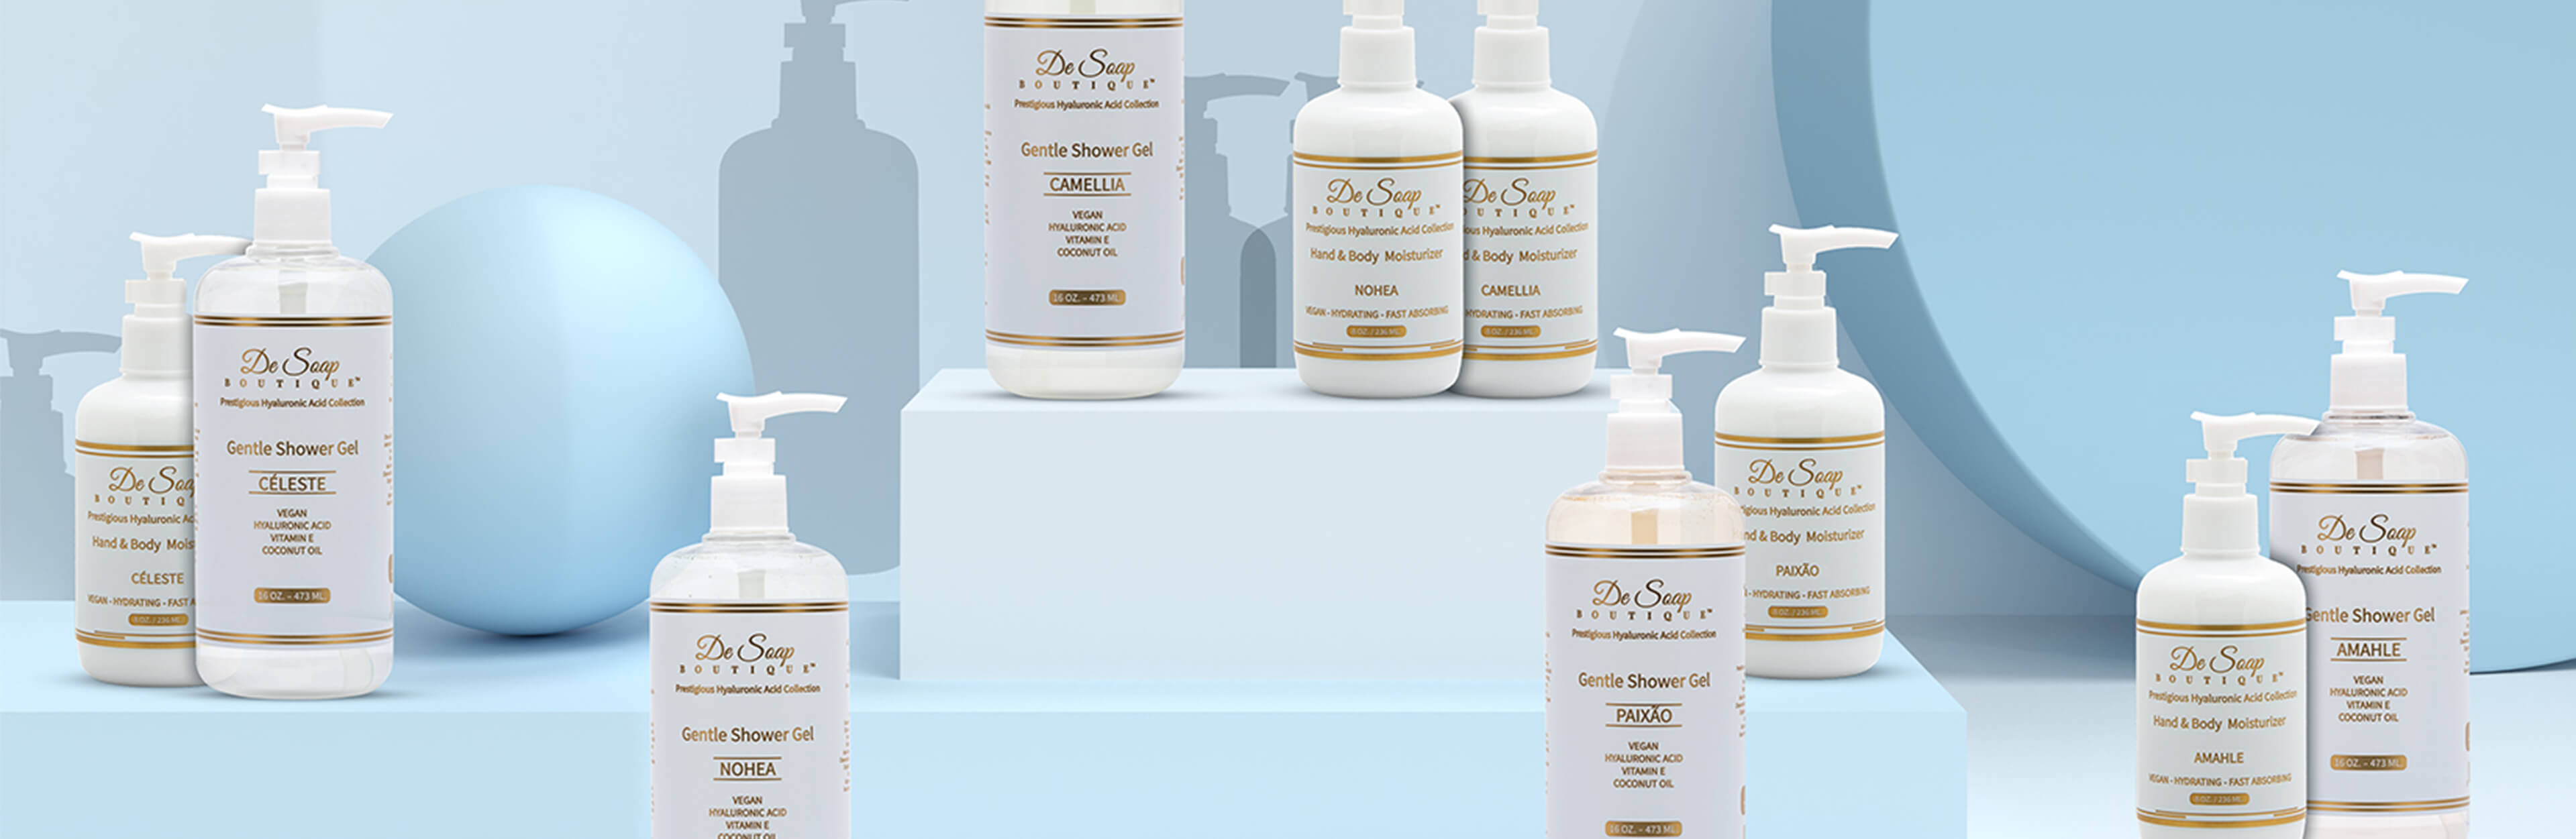 the moisturizers  collection banner image